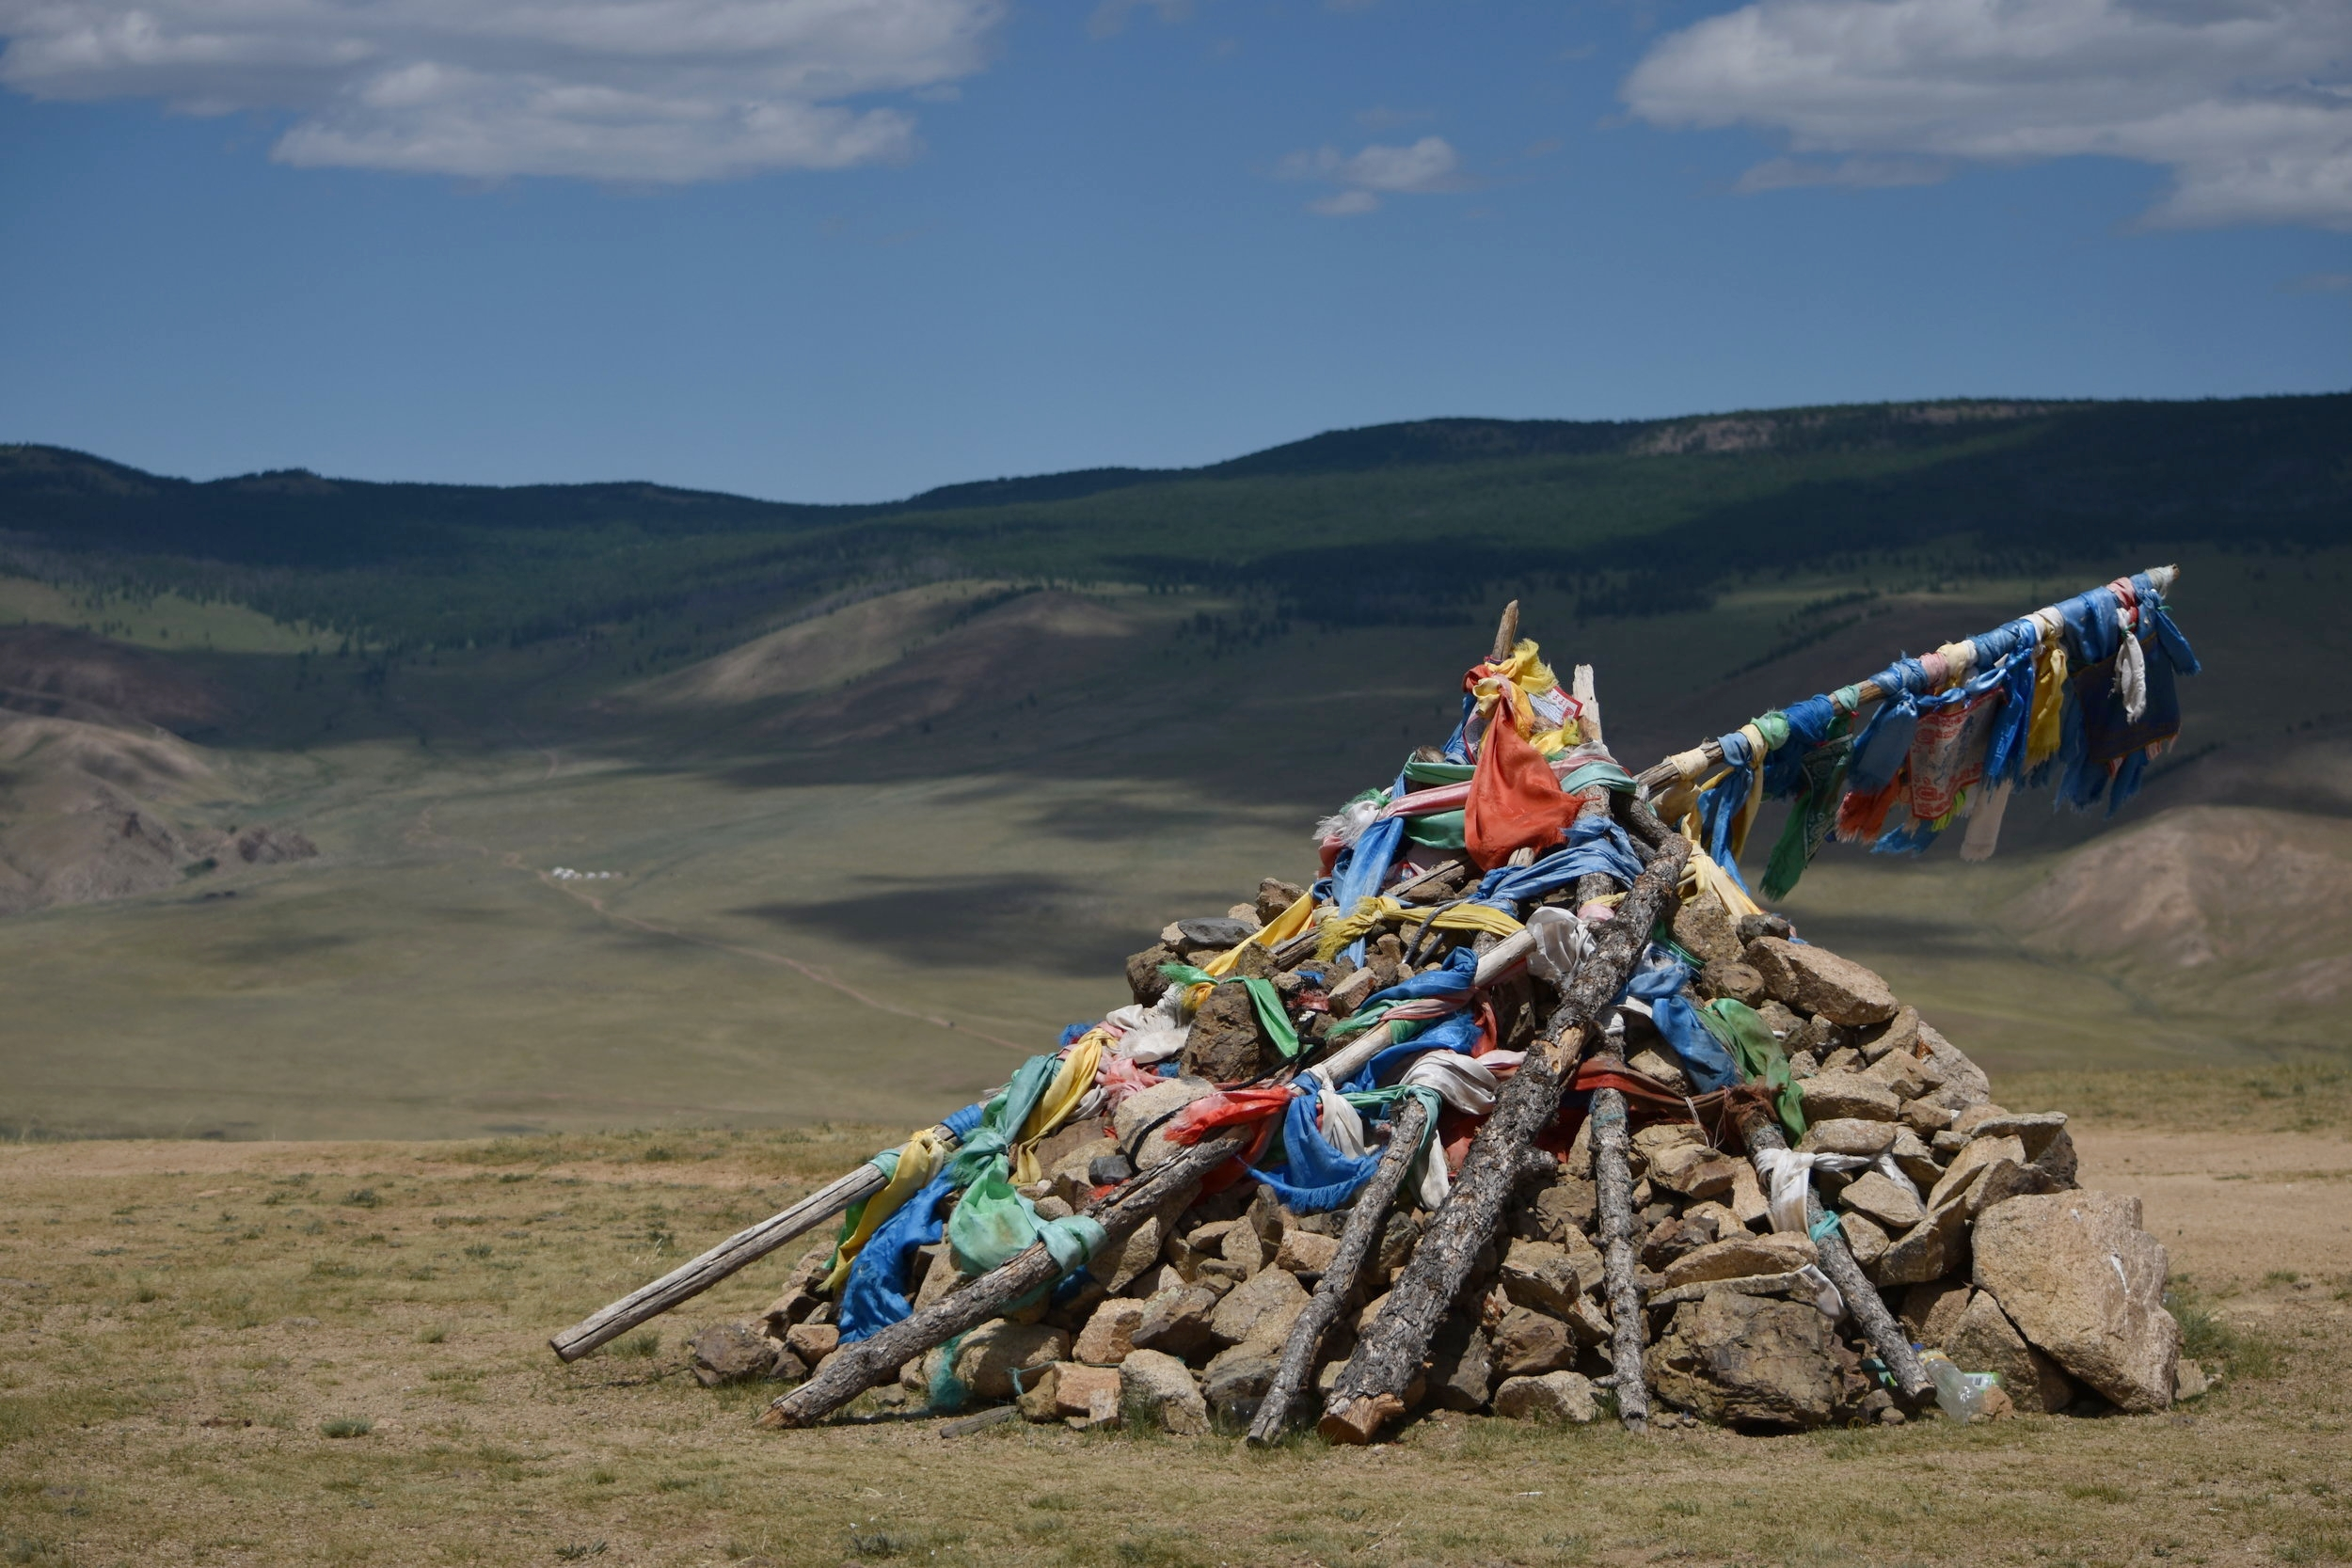 rencontre-chamane-mongolie.jpg